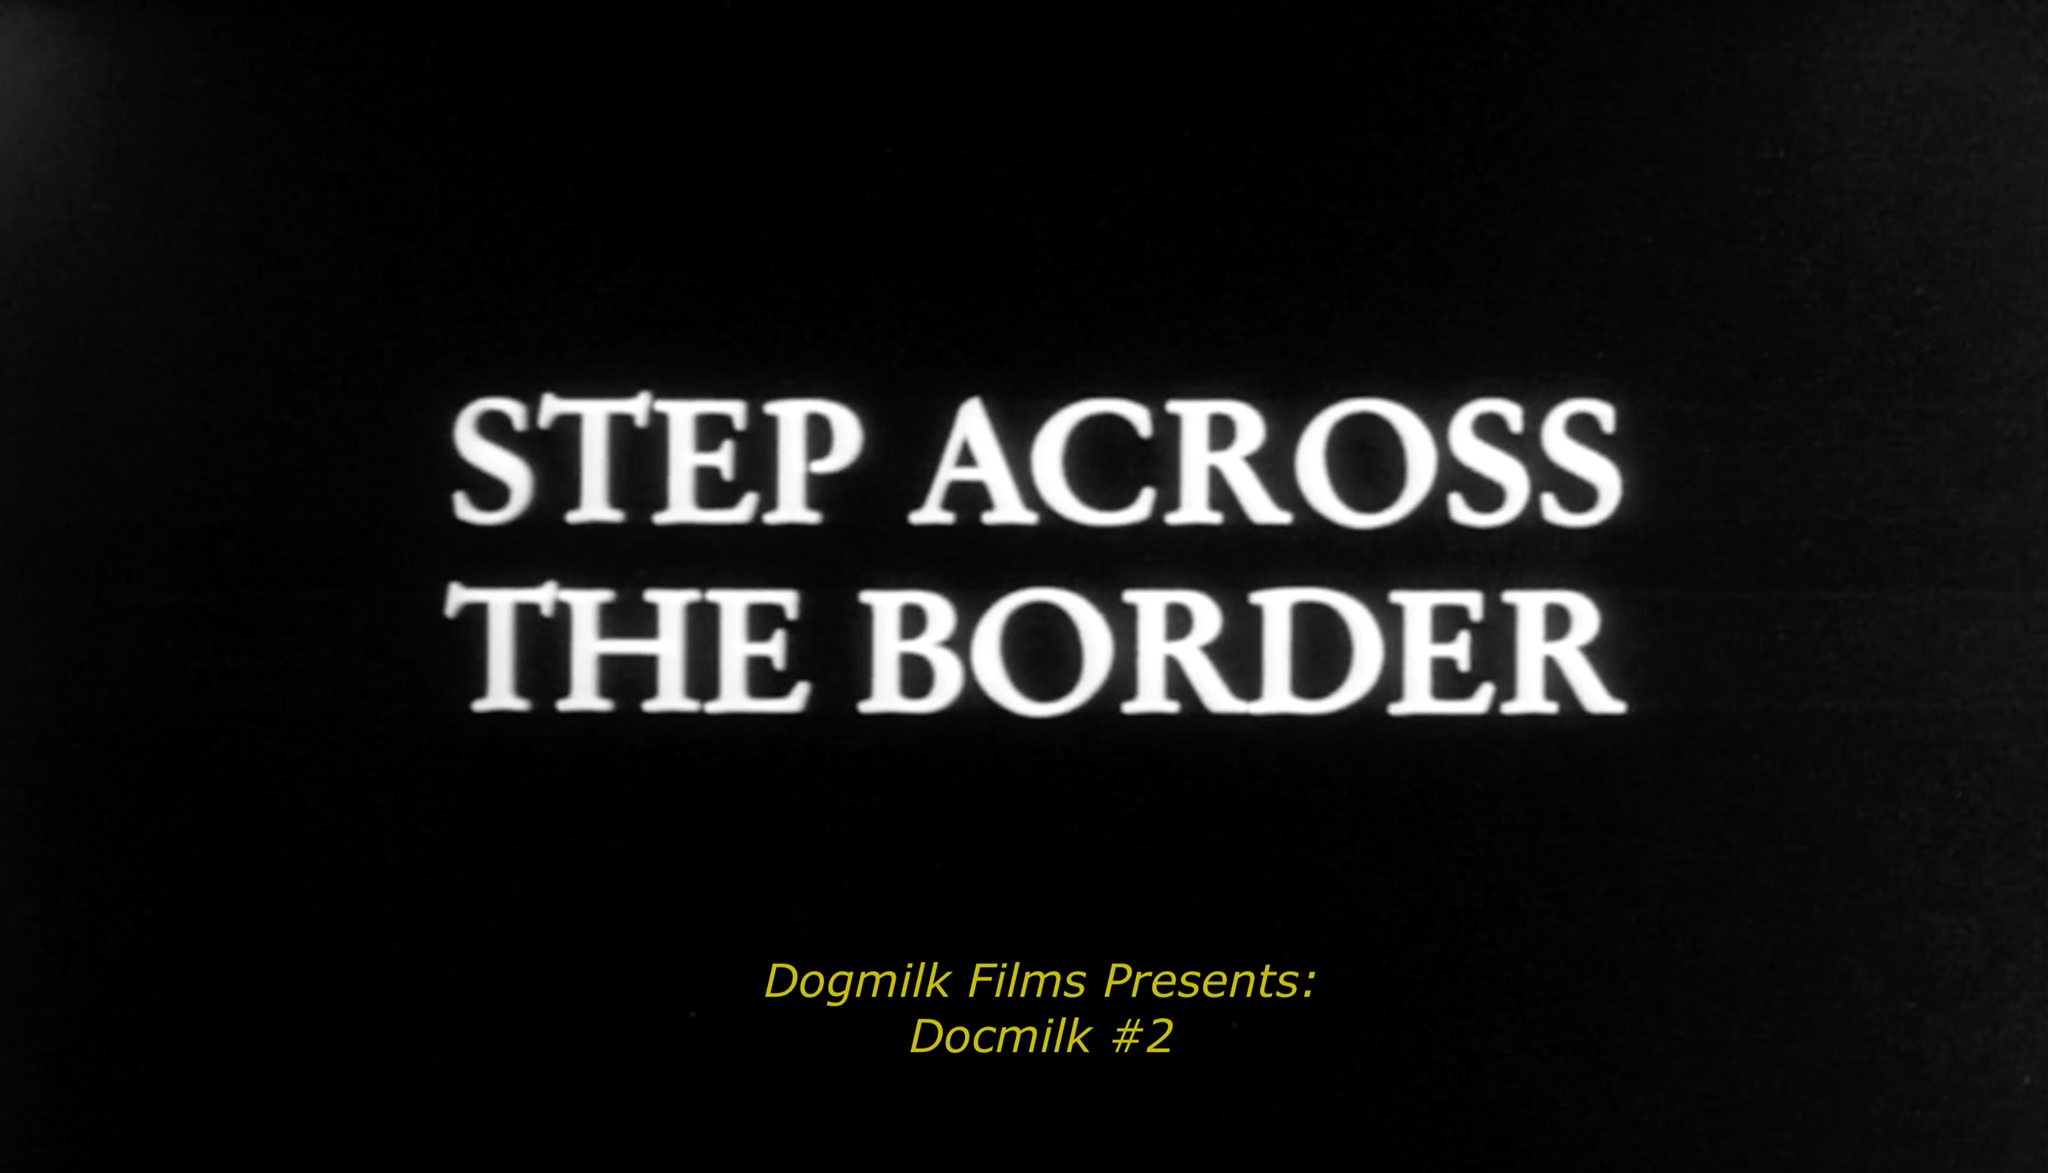 Dogmilk presents Docmilk #2 : Step Across the Border